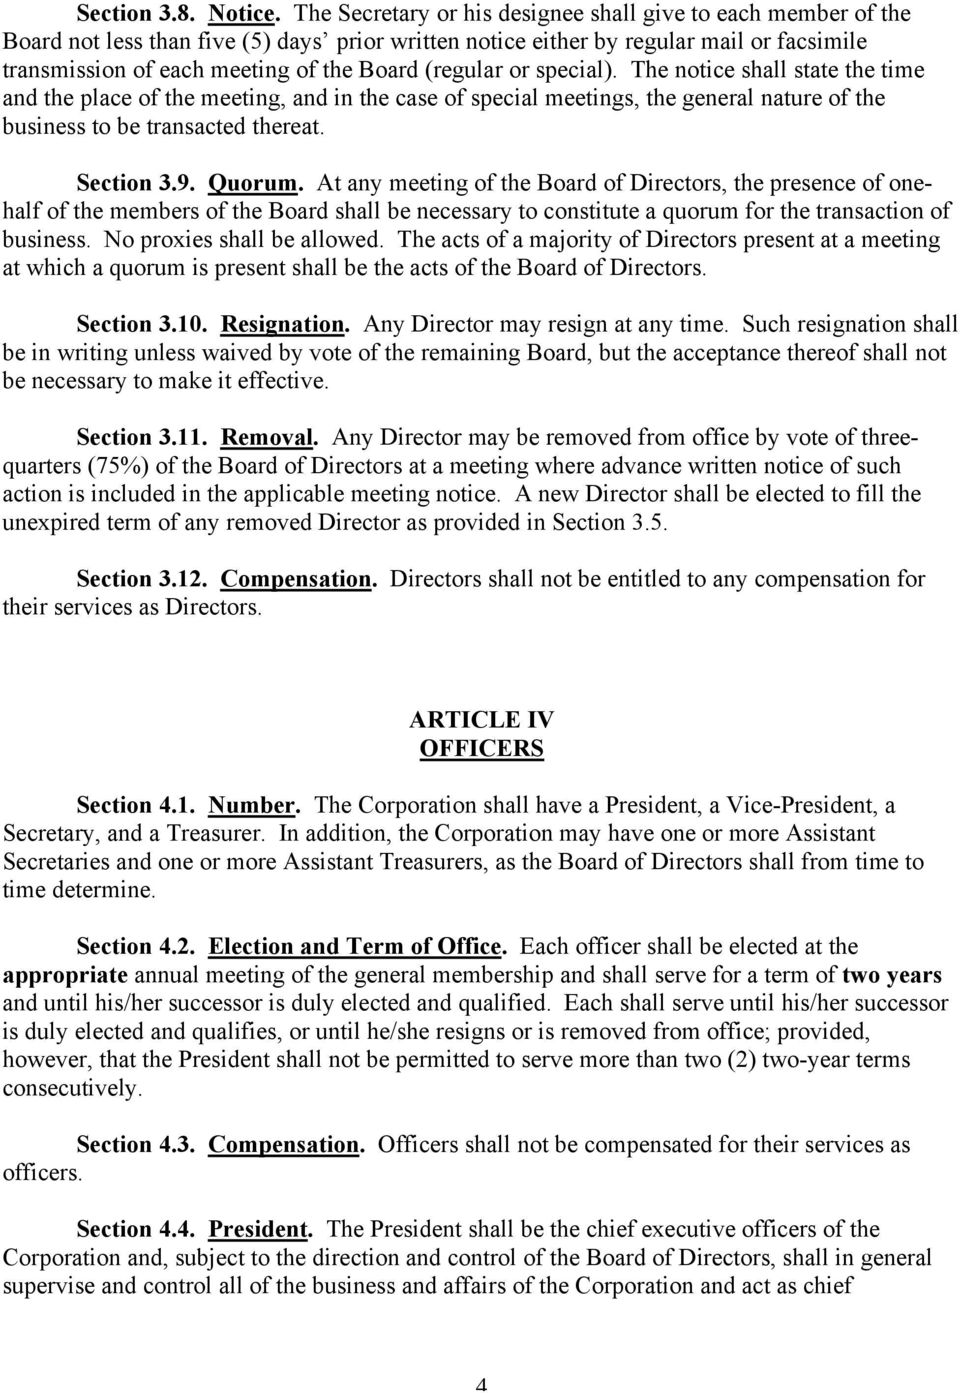 (regular or special). The notice shall state the time and the place of the meeting, and in the case of special meetings, the general nature of the business to be transacted thereat. Section 3.9.